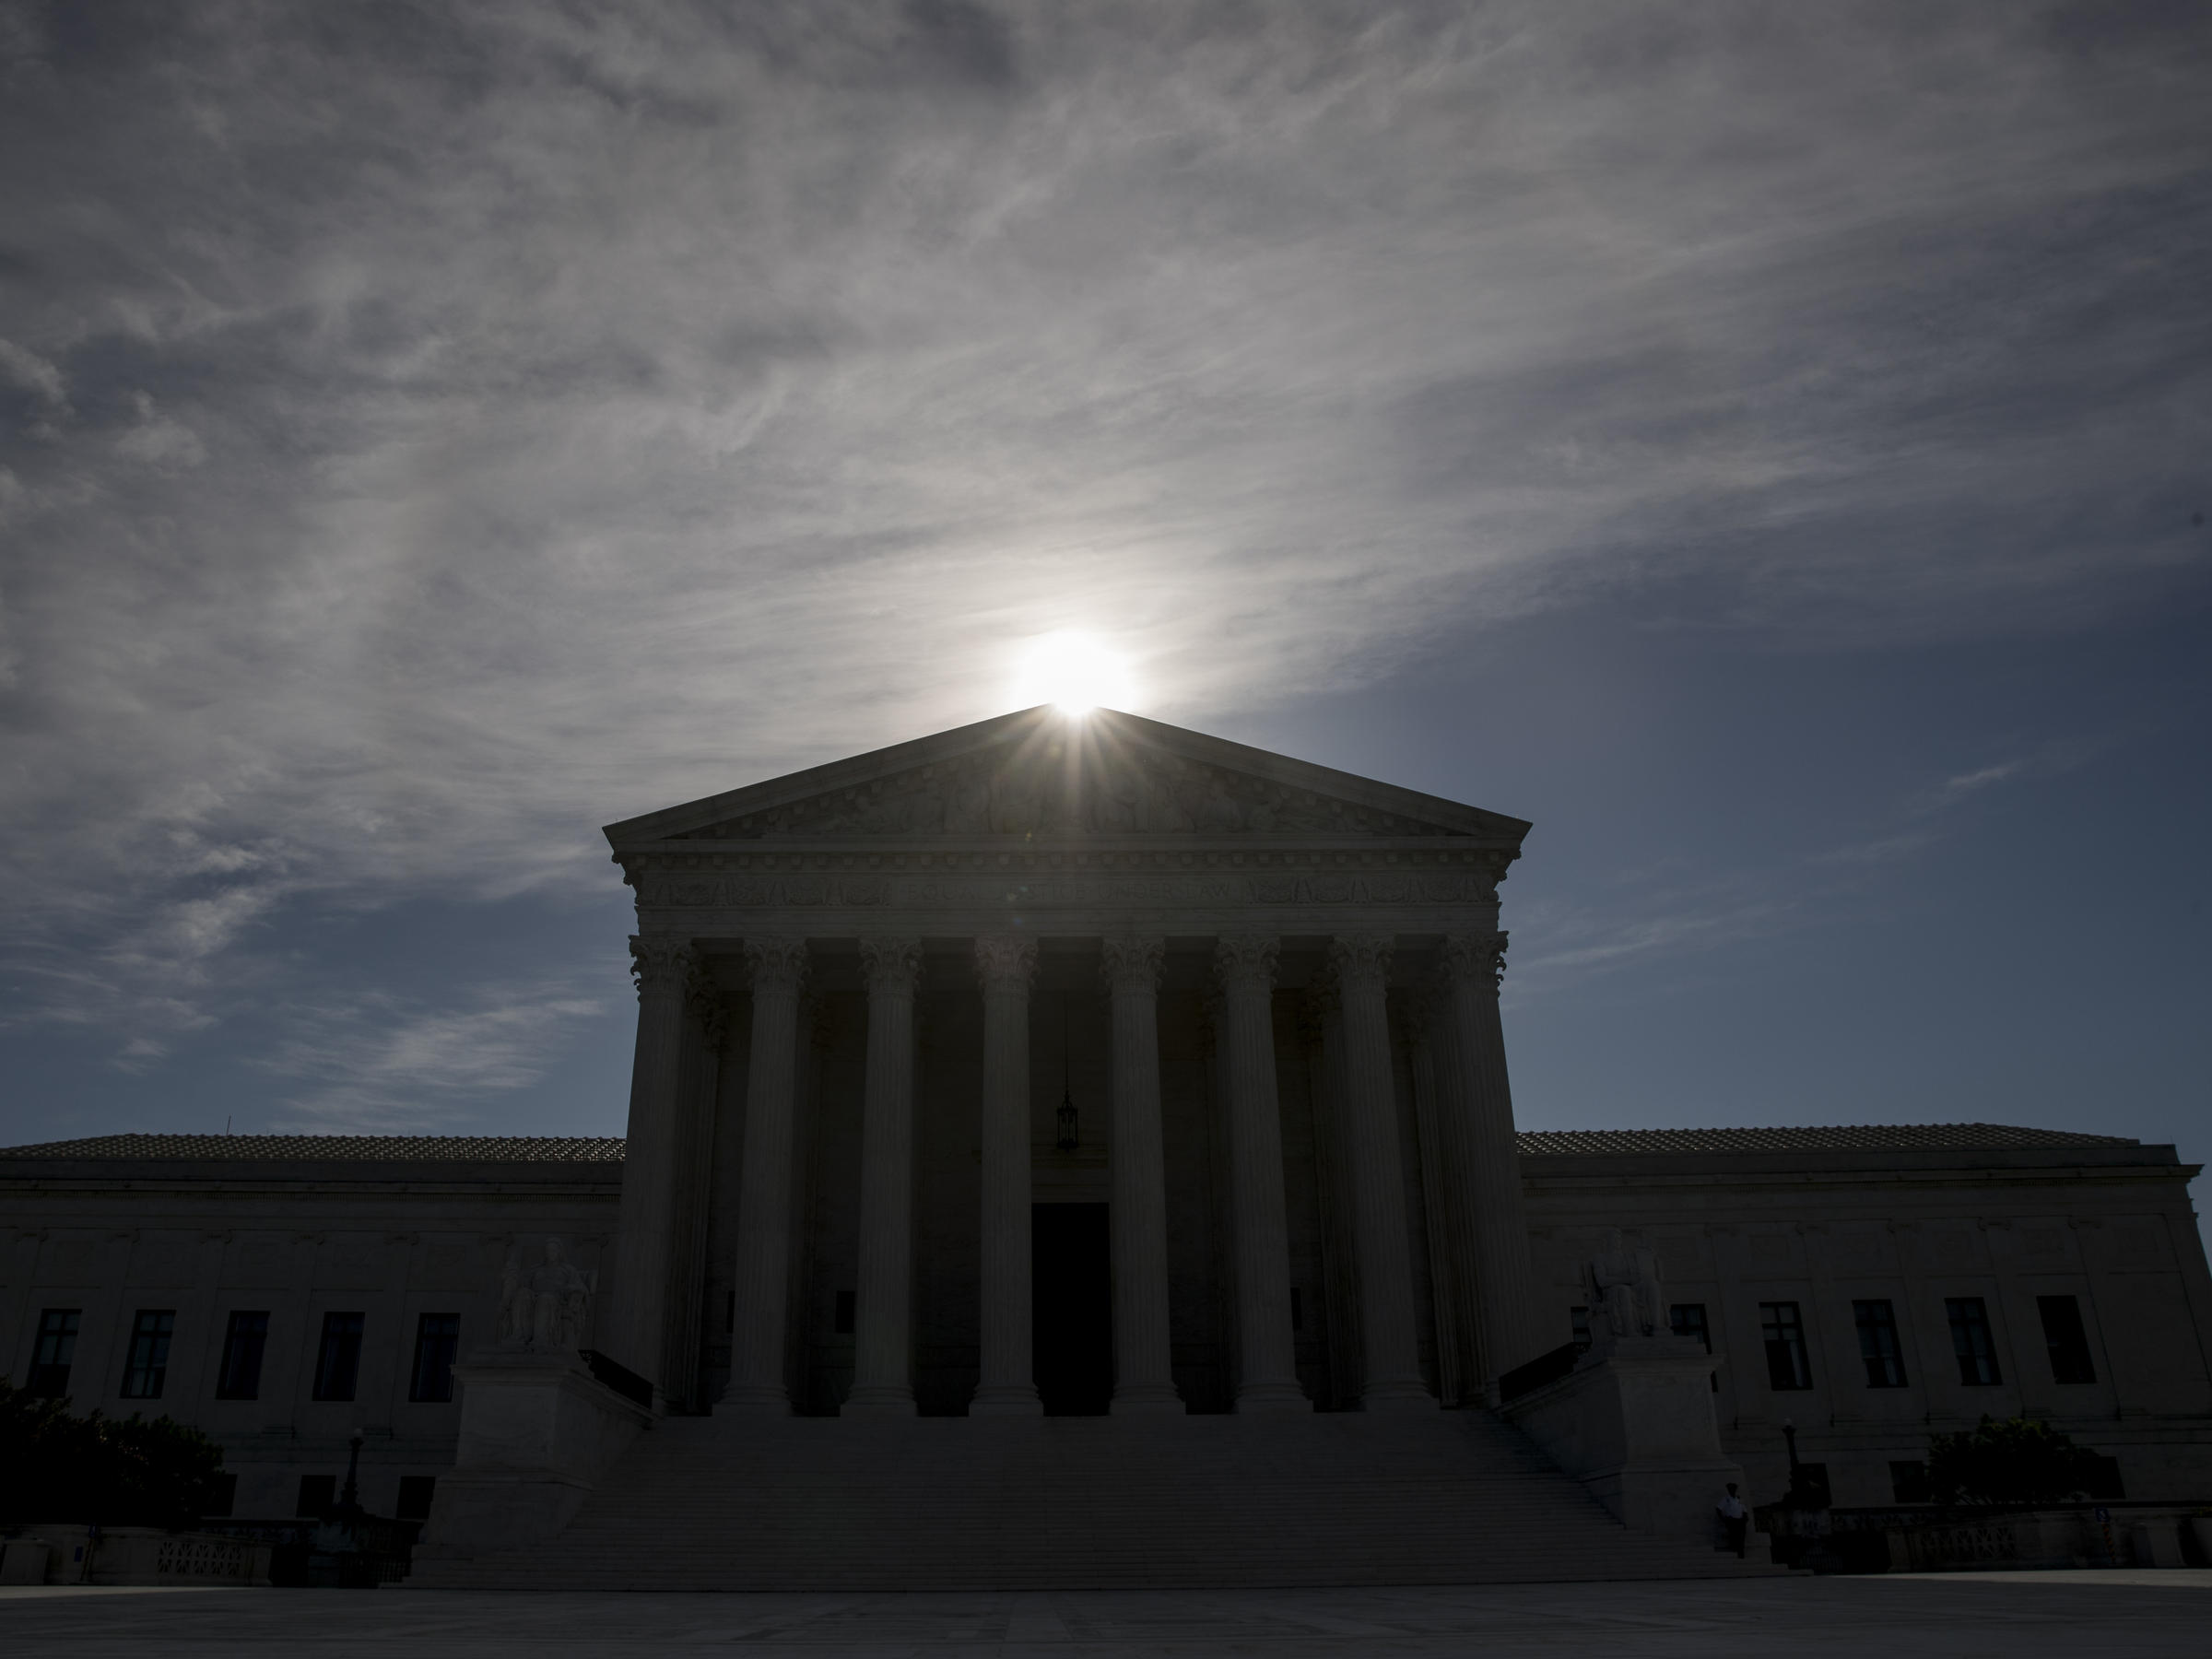 Undocumented immigrants: Trump administration wages last major Supreme Court fight